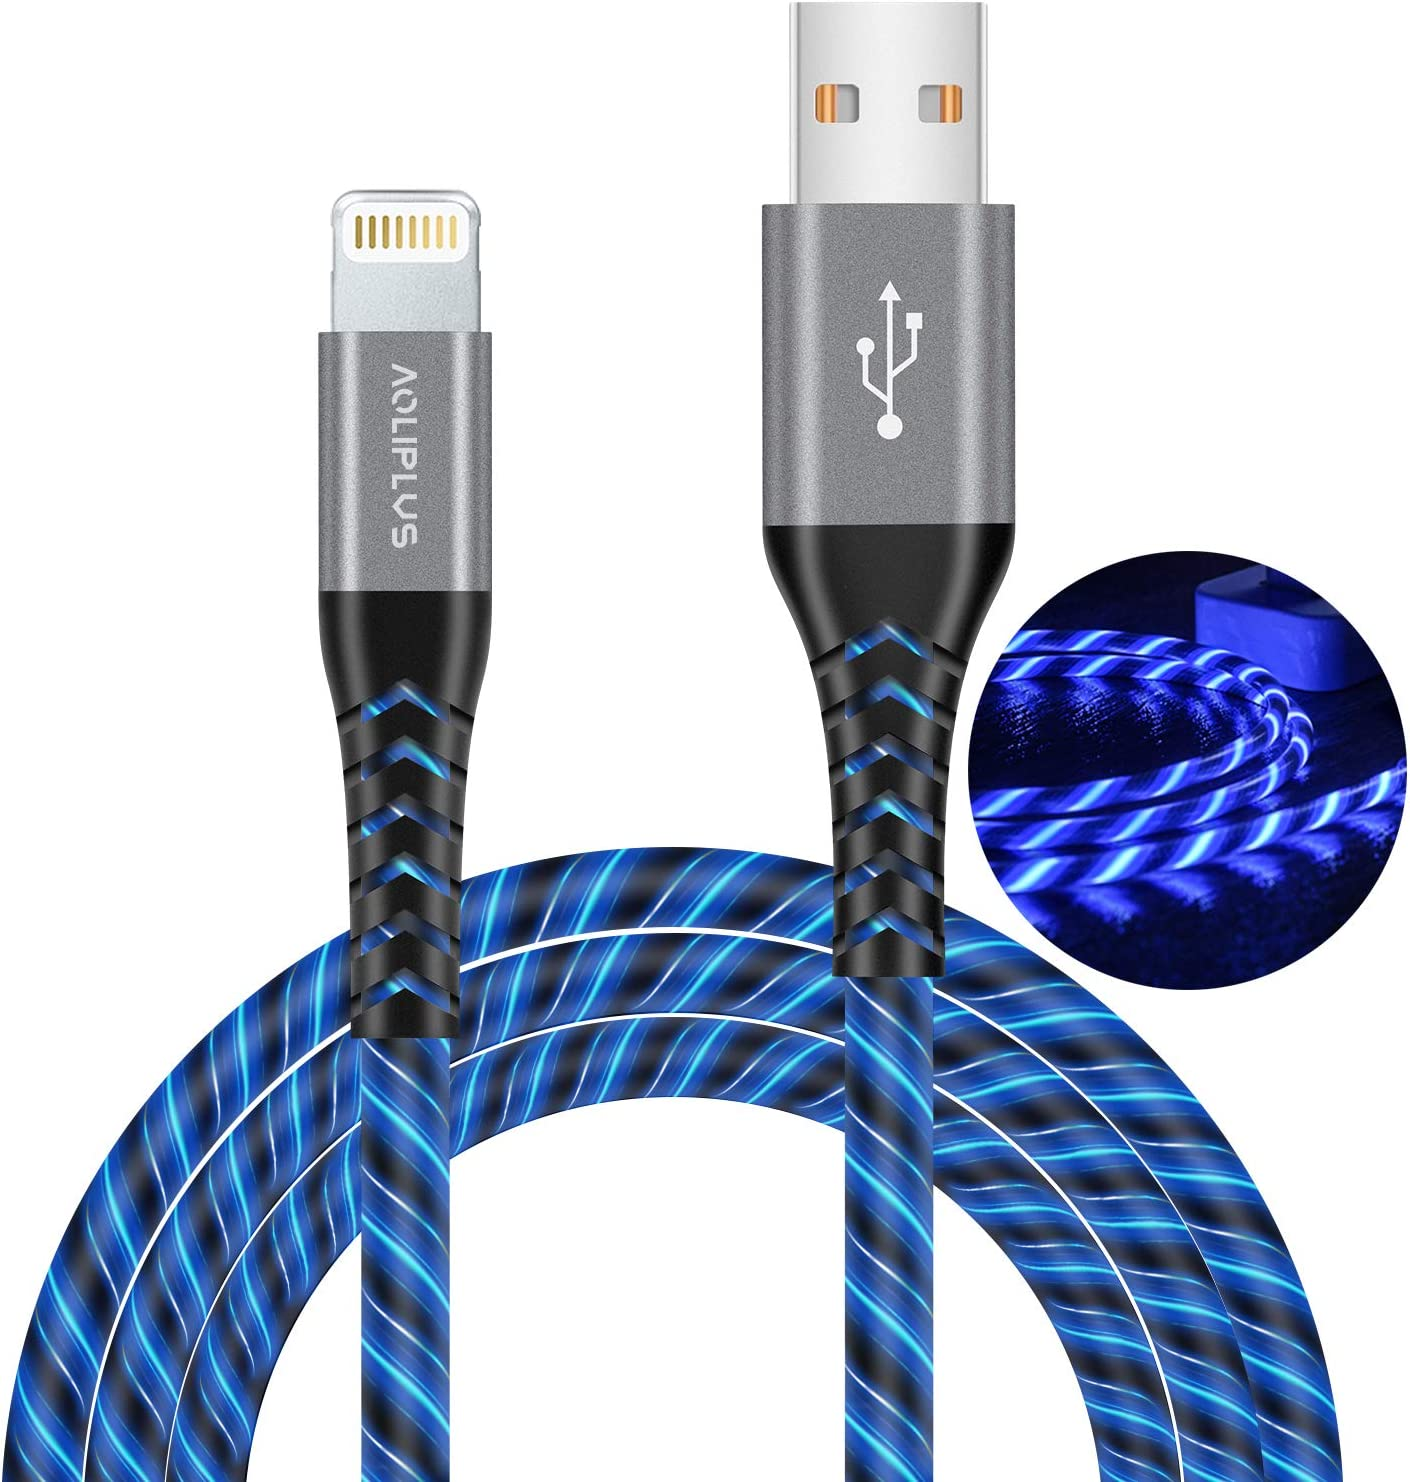 iPhone Charger Lightning Cable, MFi Certified Charger Cable Aoliplus LED Flowing Fast Charger Data Sync Transfer Cord Compatible with iPhone 11/Pro/Max/X/XR/XS Max/8/Plus/7/7 Plus/6S/6 Plus/SE (Blue)